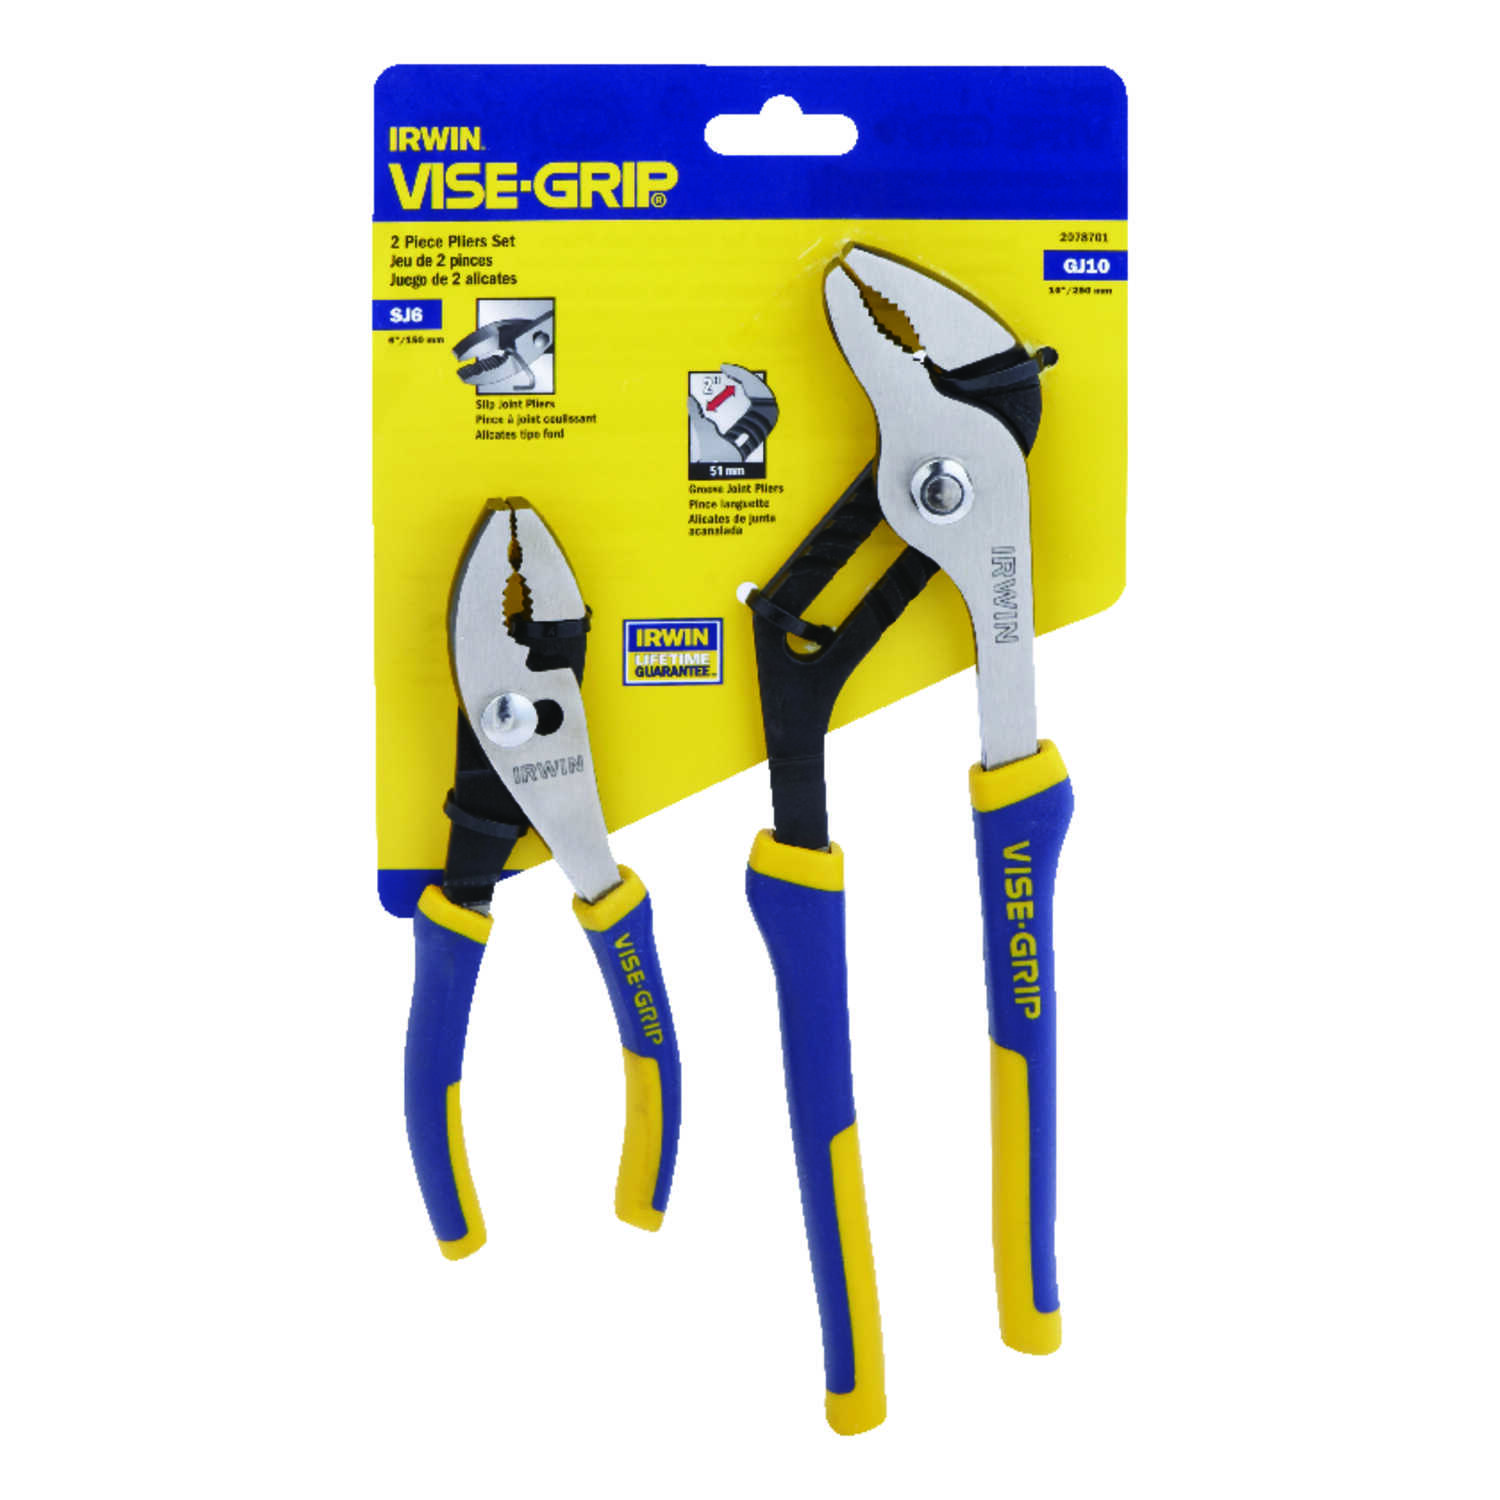 Irwin  Vise-Grip  6 & 10 in. Steel  Pliers Set  Blue/Yellow  2 pk